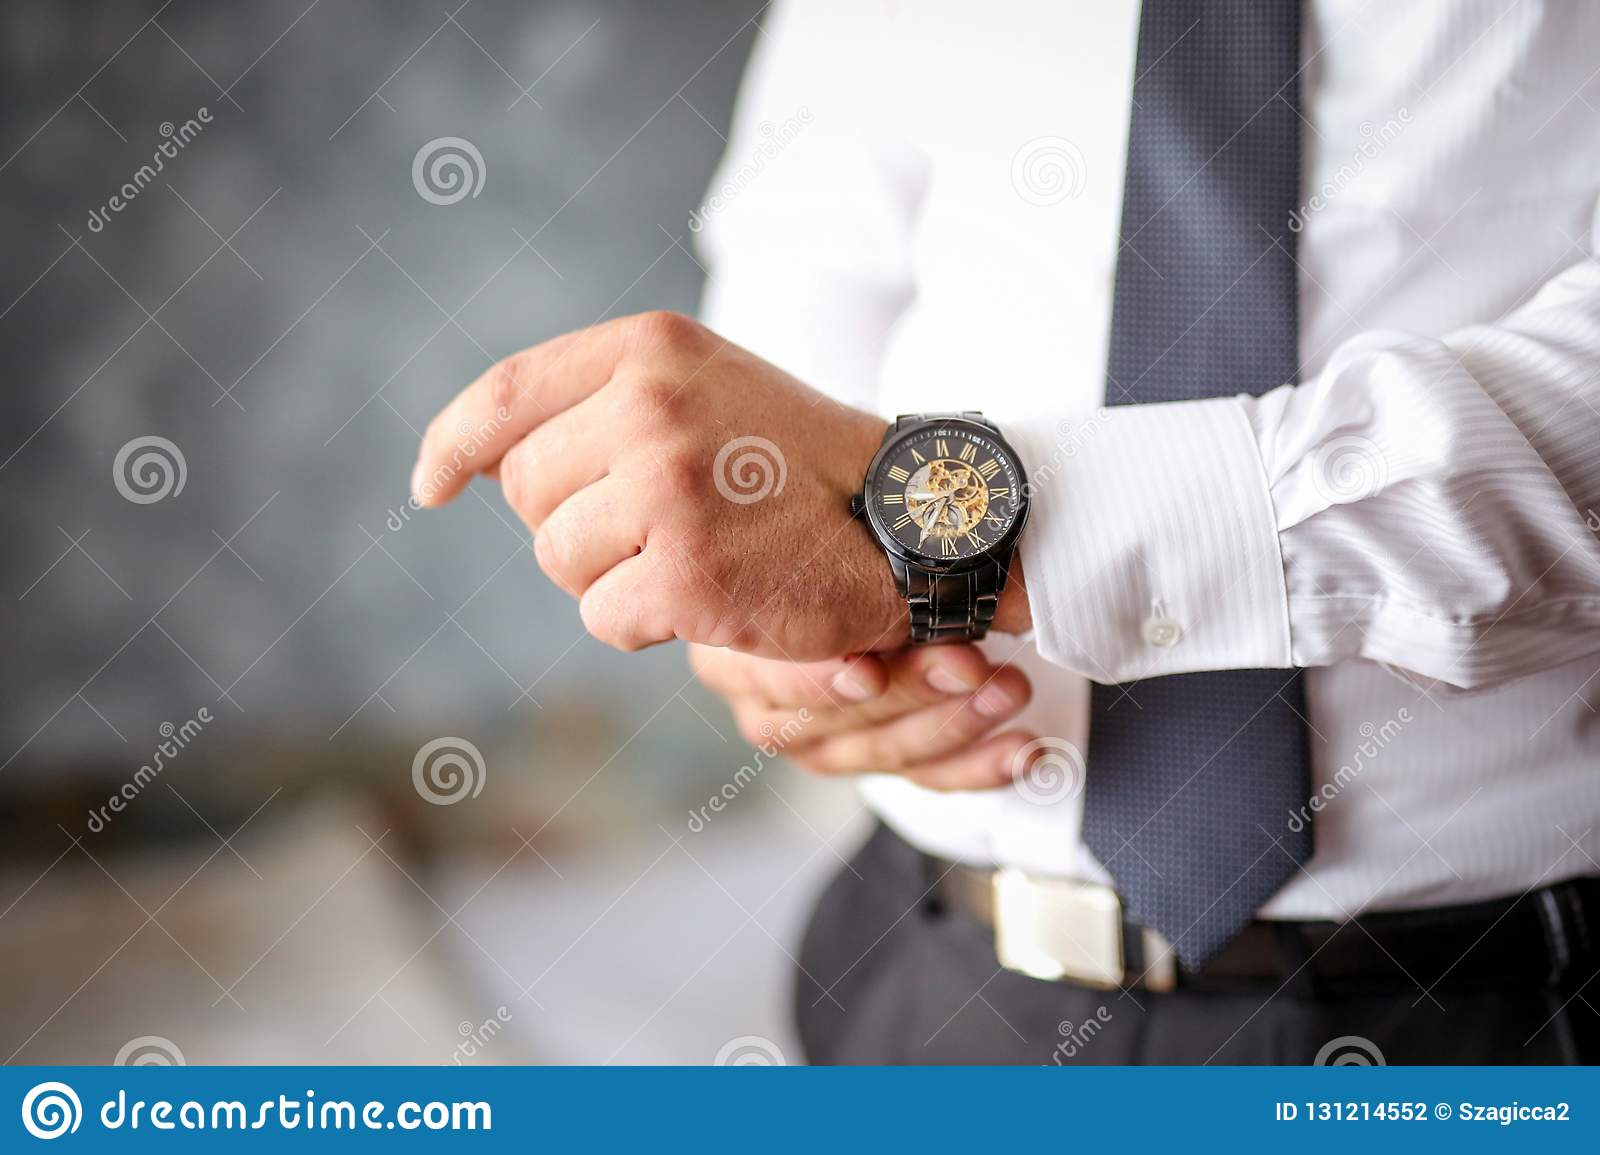 A close-up of a cropped frame of a man in an expensive classic costume looks at his watch.